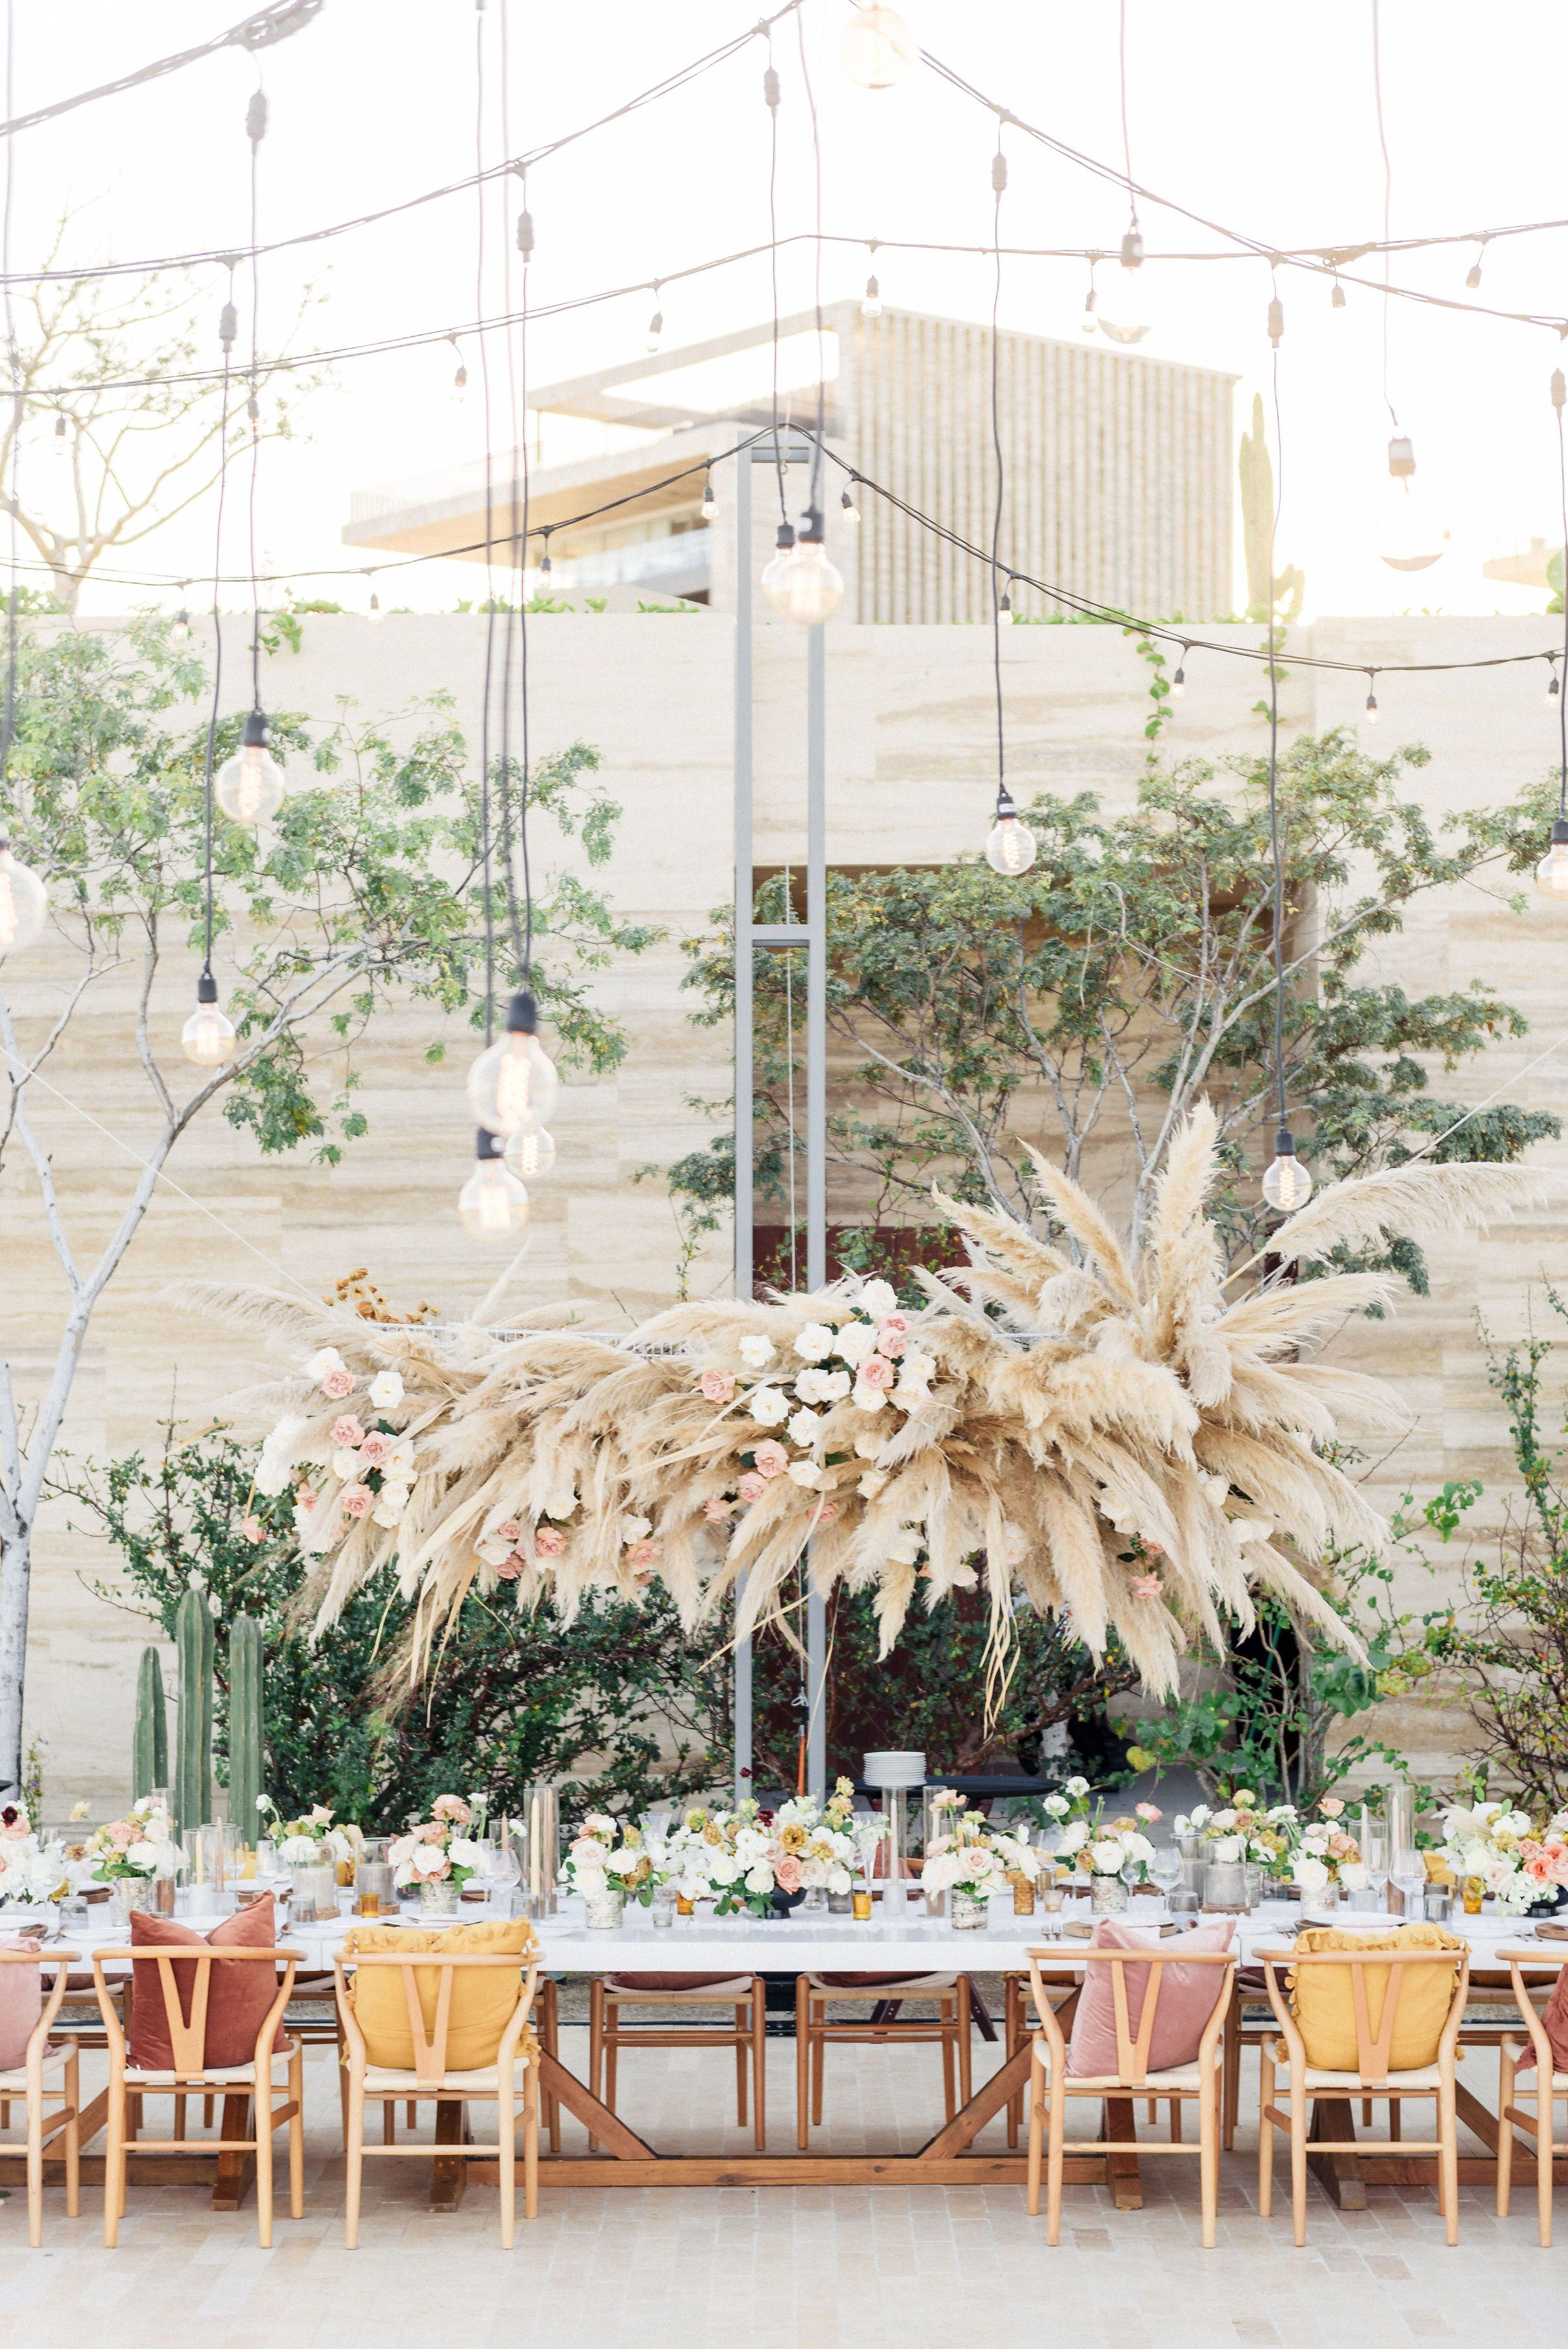 Selene Ted Wedding At Solaz Resort In Los Cabos Cabo Wedding